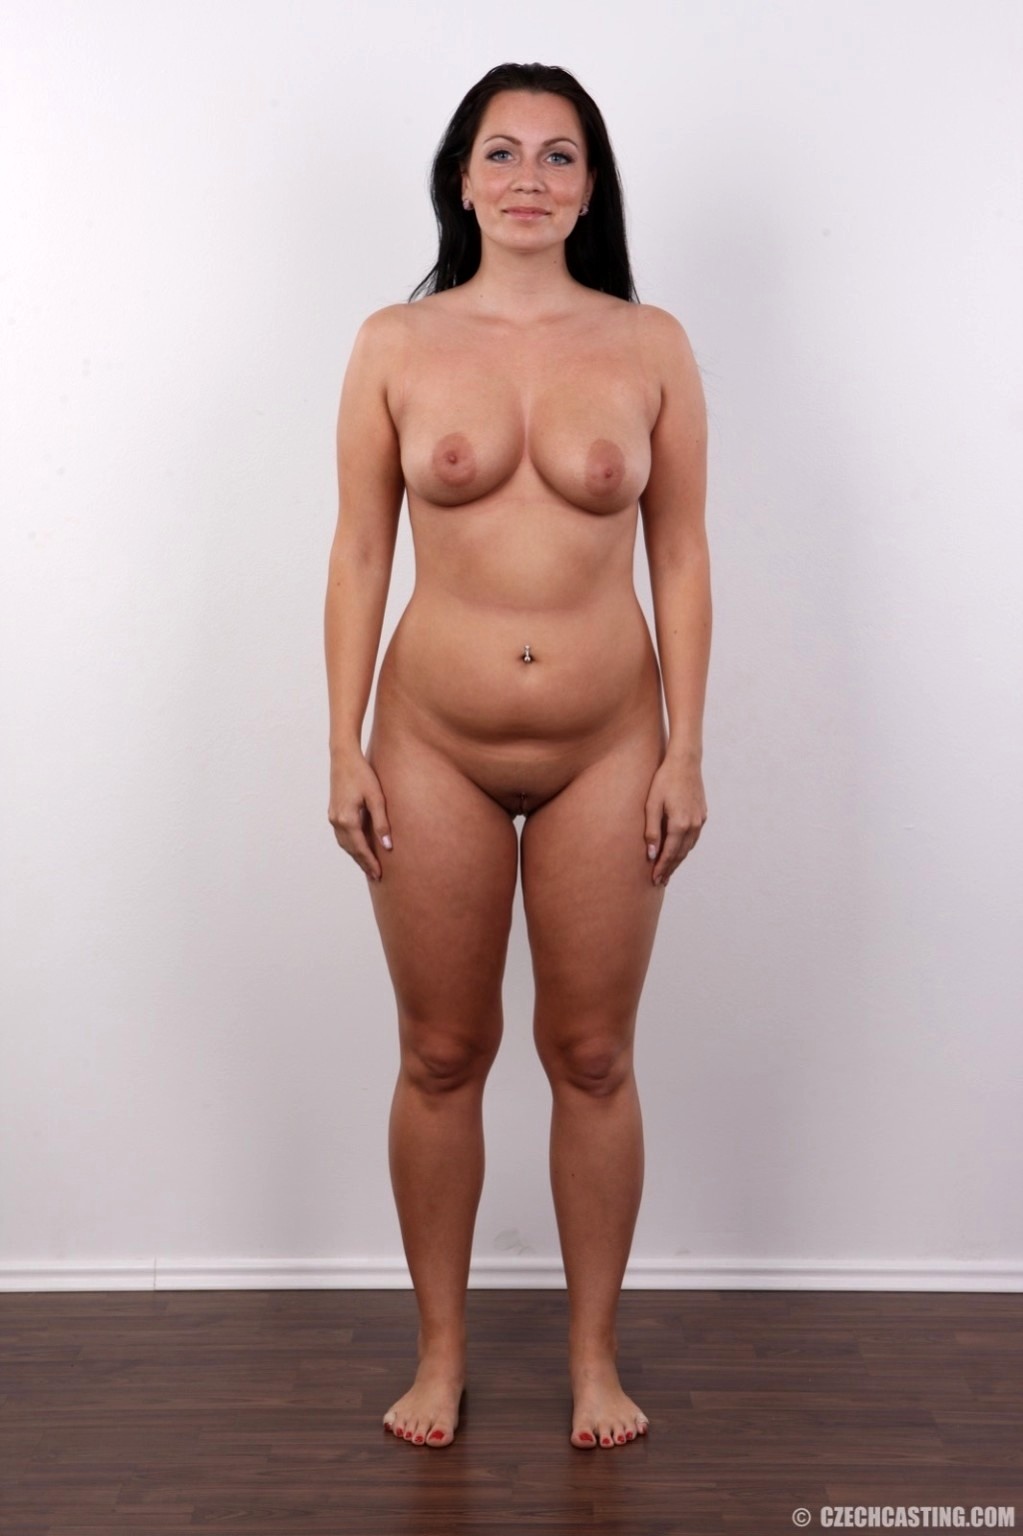 Pictures of nude woman standing #1